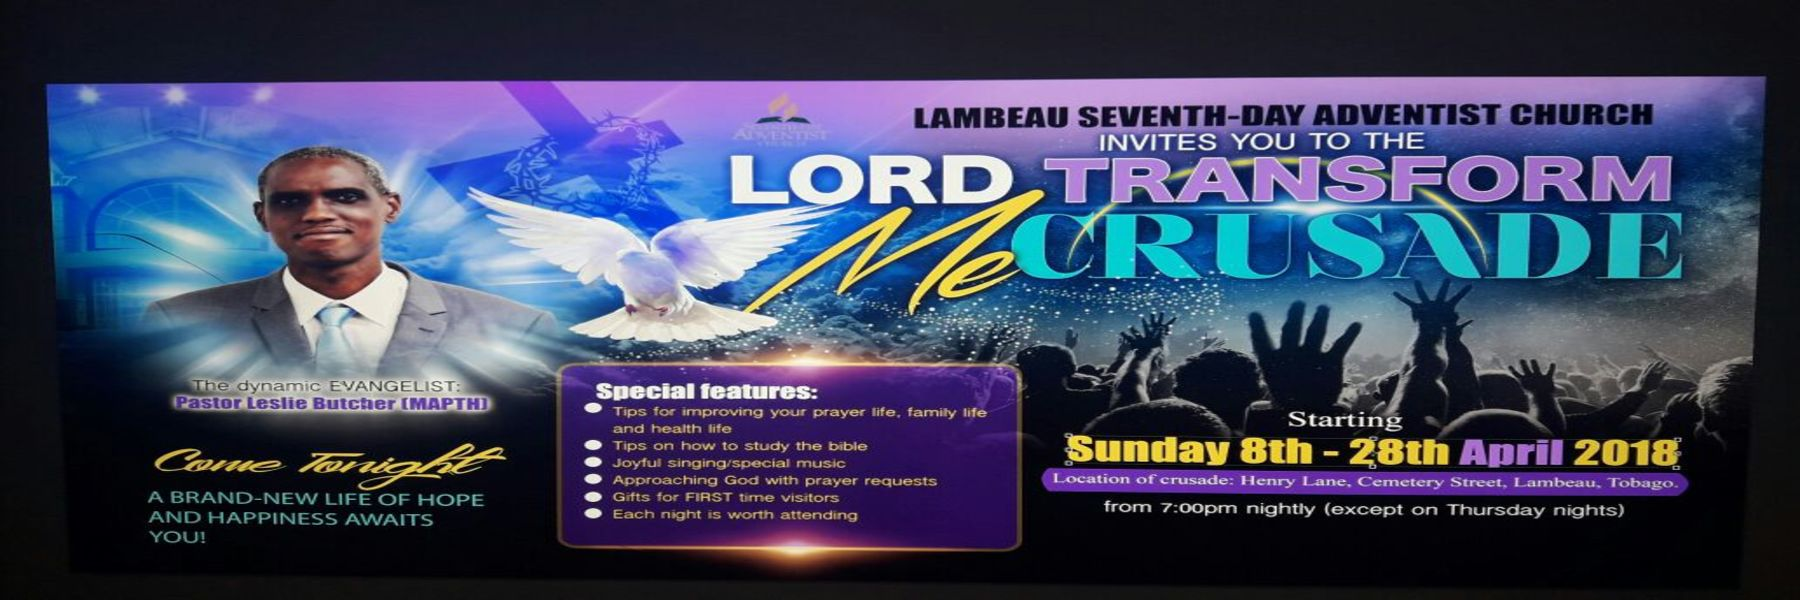 <strong>Lord Transform Me Crusade</strong>  	            <br/>Pastor Leslie Butcher